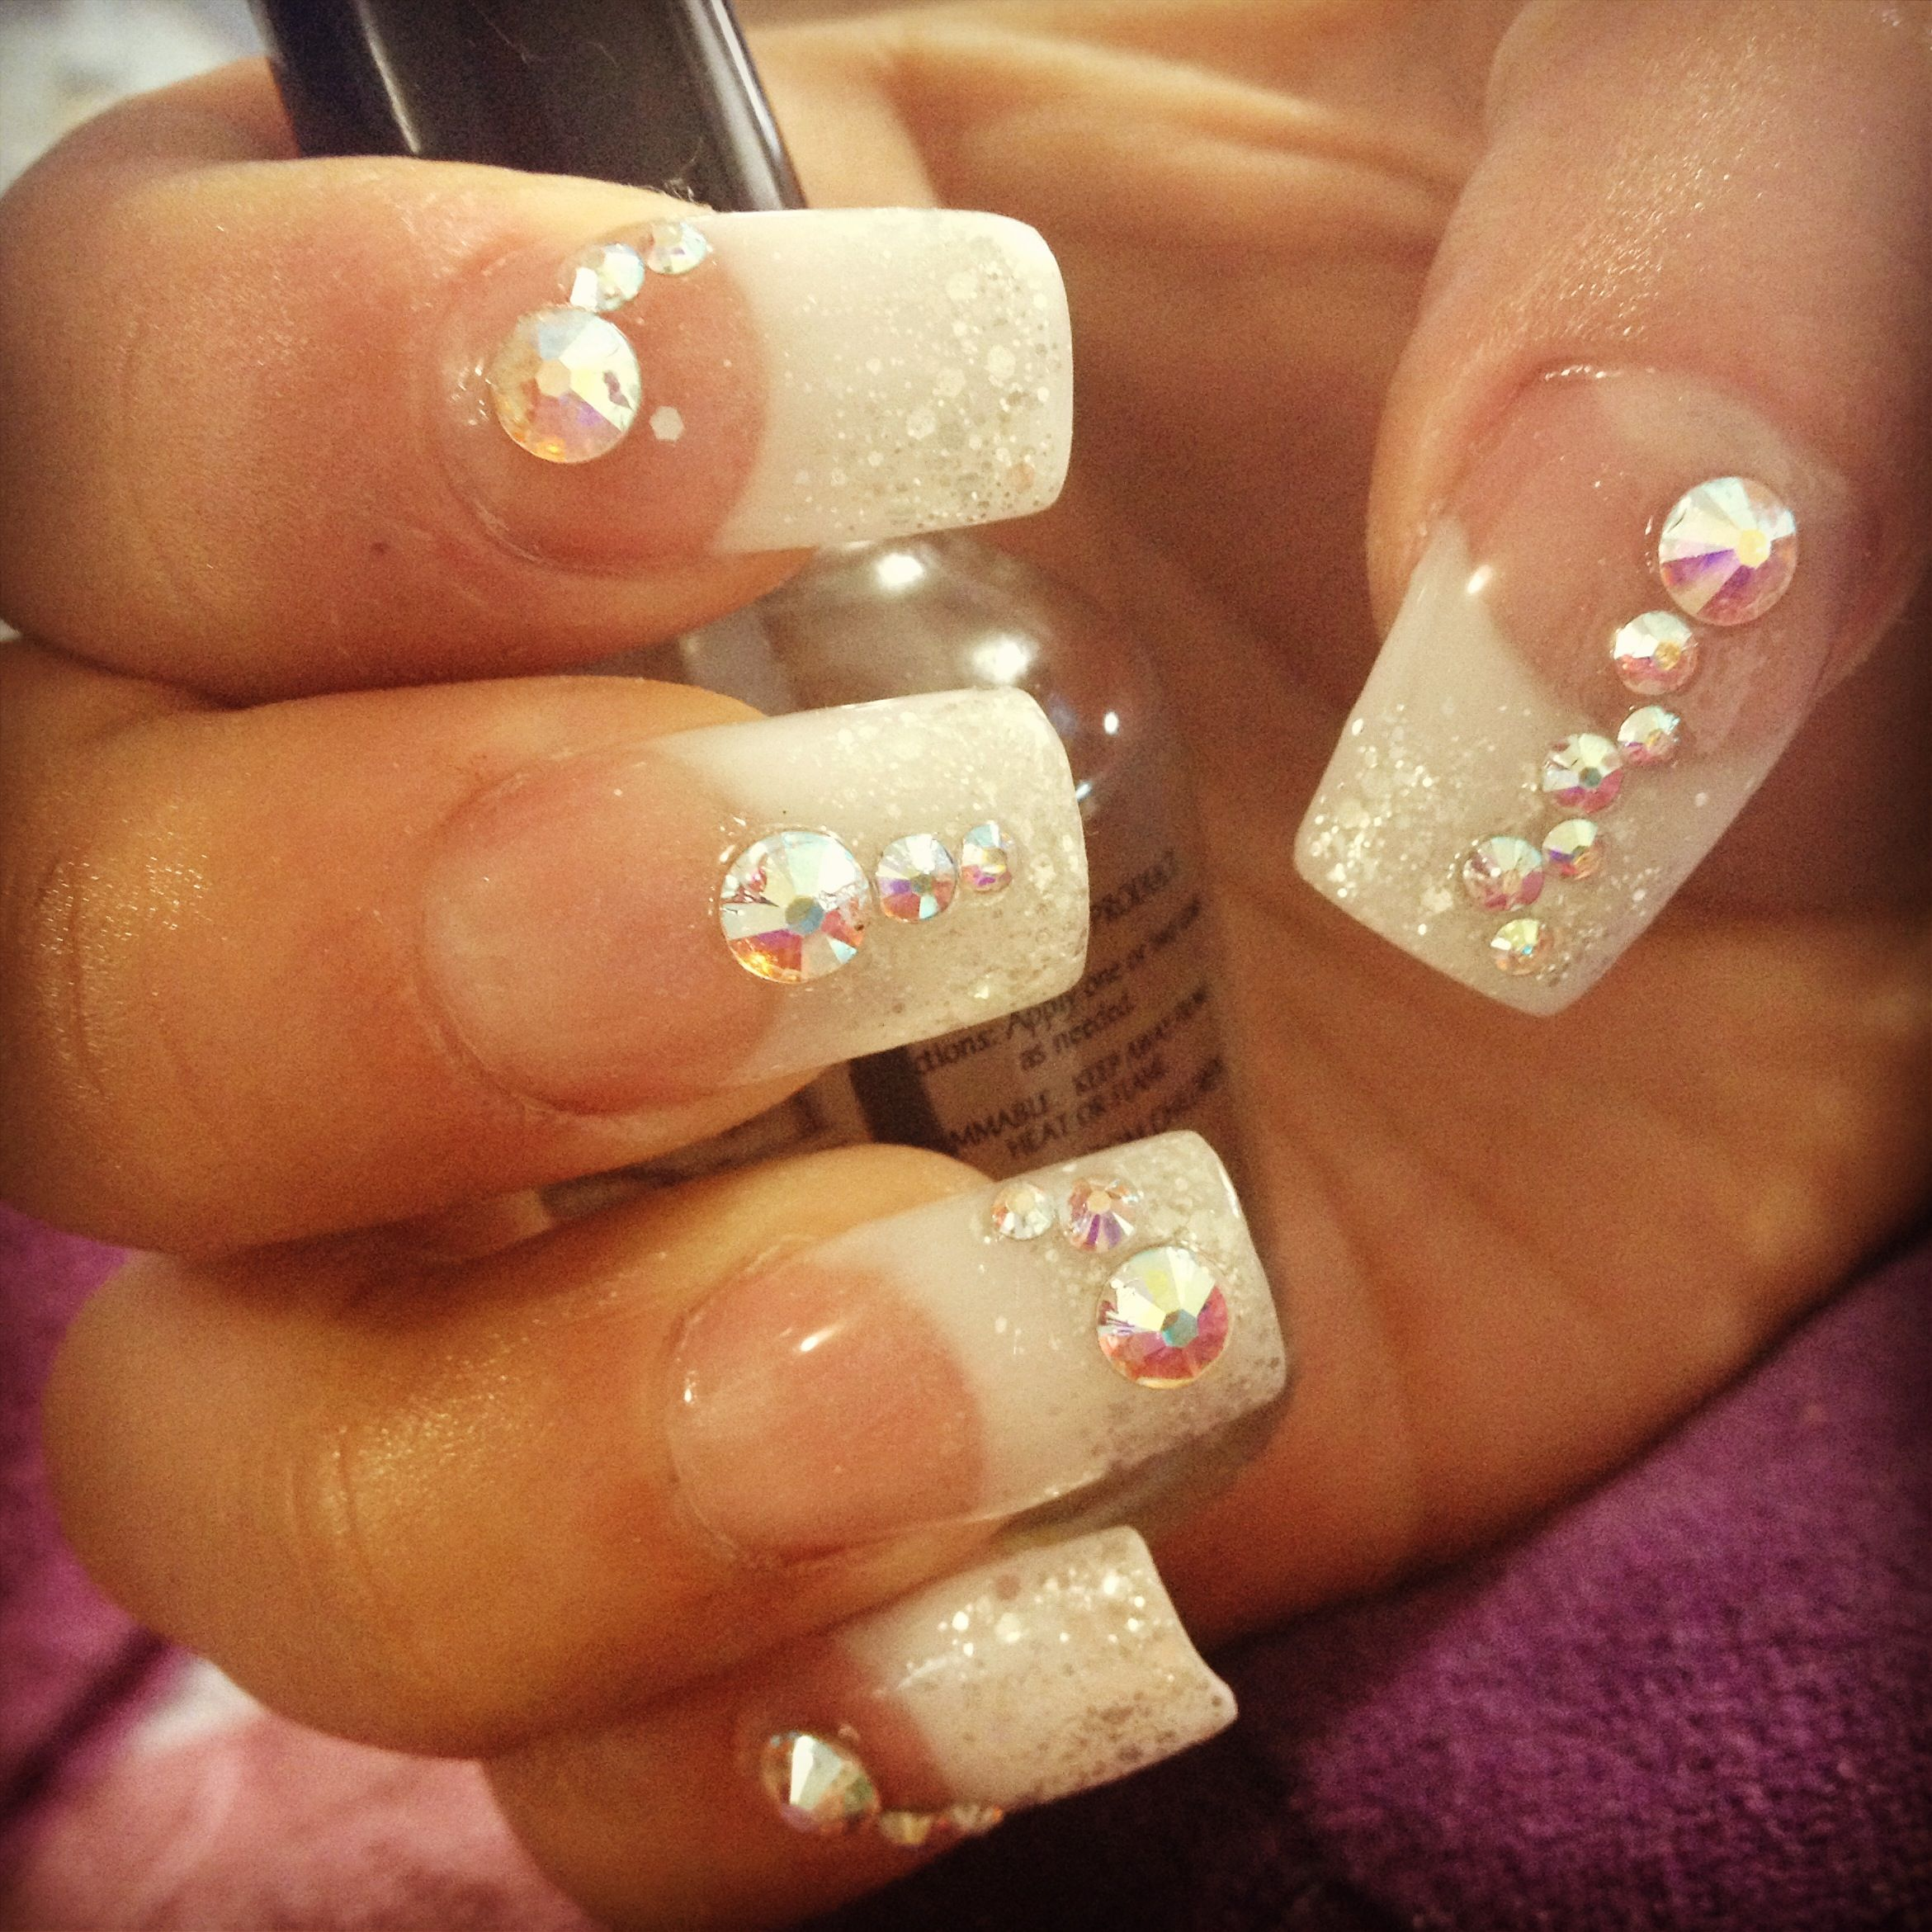 Sparkling acrylic nails for New Year\'s Eve | nails. | Pinterest ...